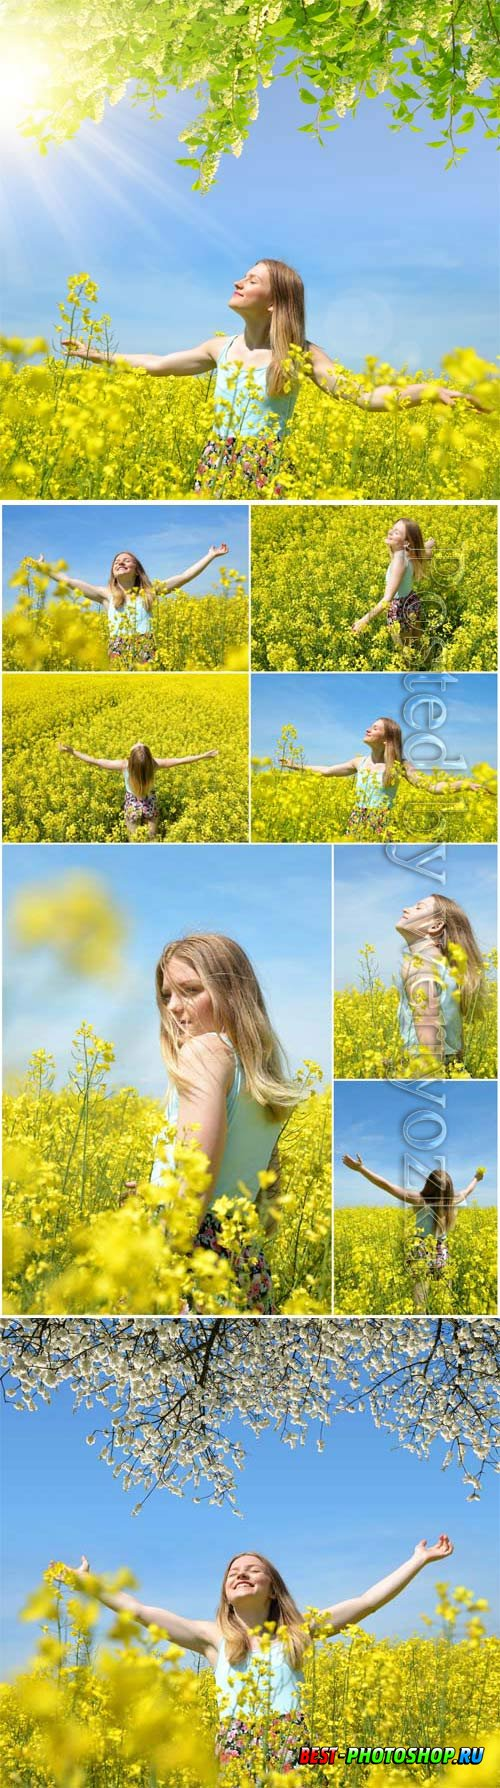 Girl in a field with yellow flowers stock photo